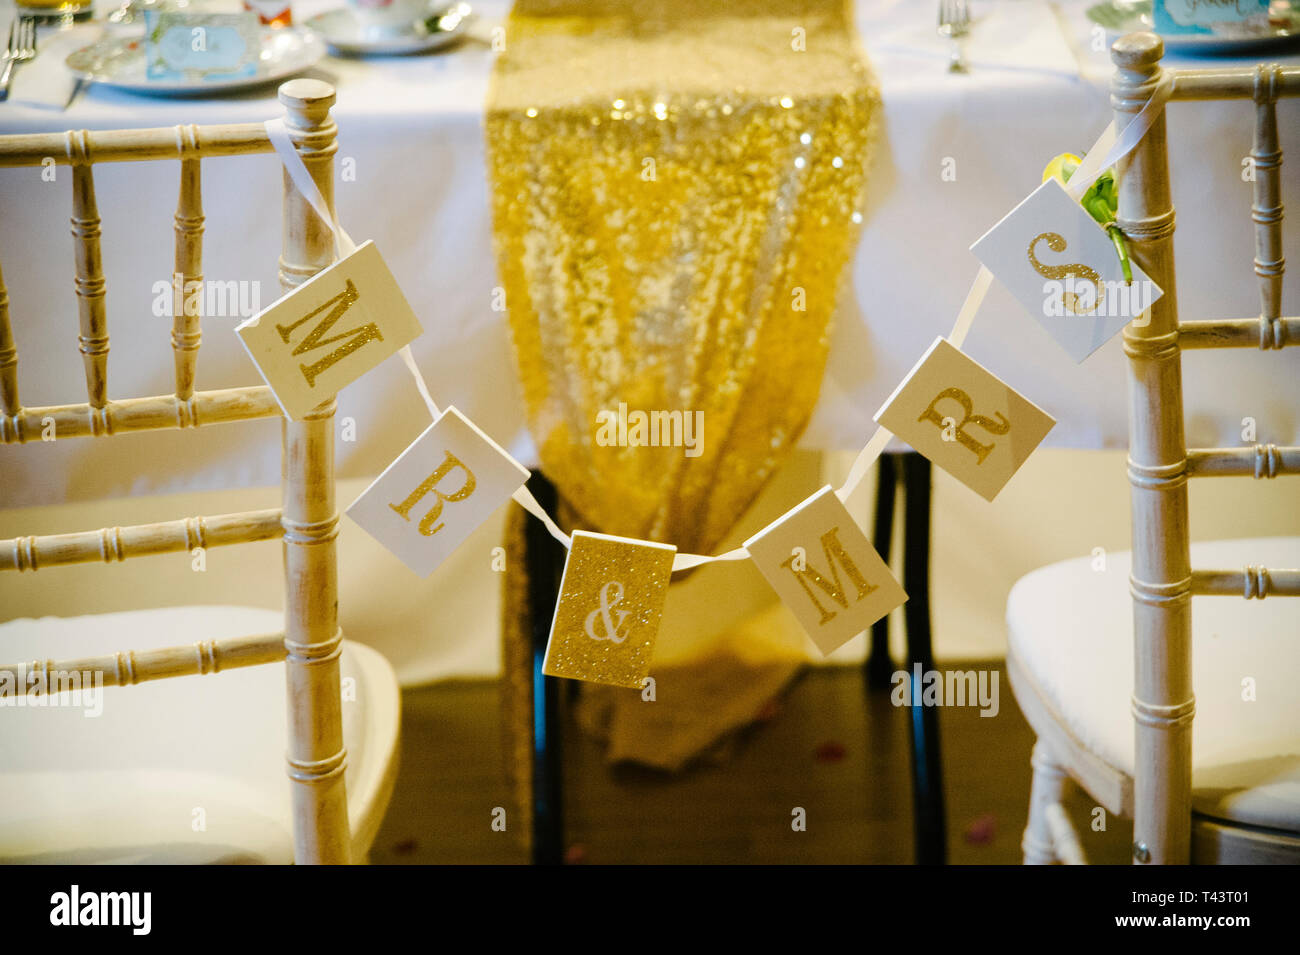 mr & mrs sign bunting tied to wooden chairs at boho wedding reception. Shabby chic wedding ideas - Stock Image